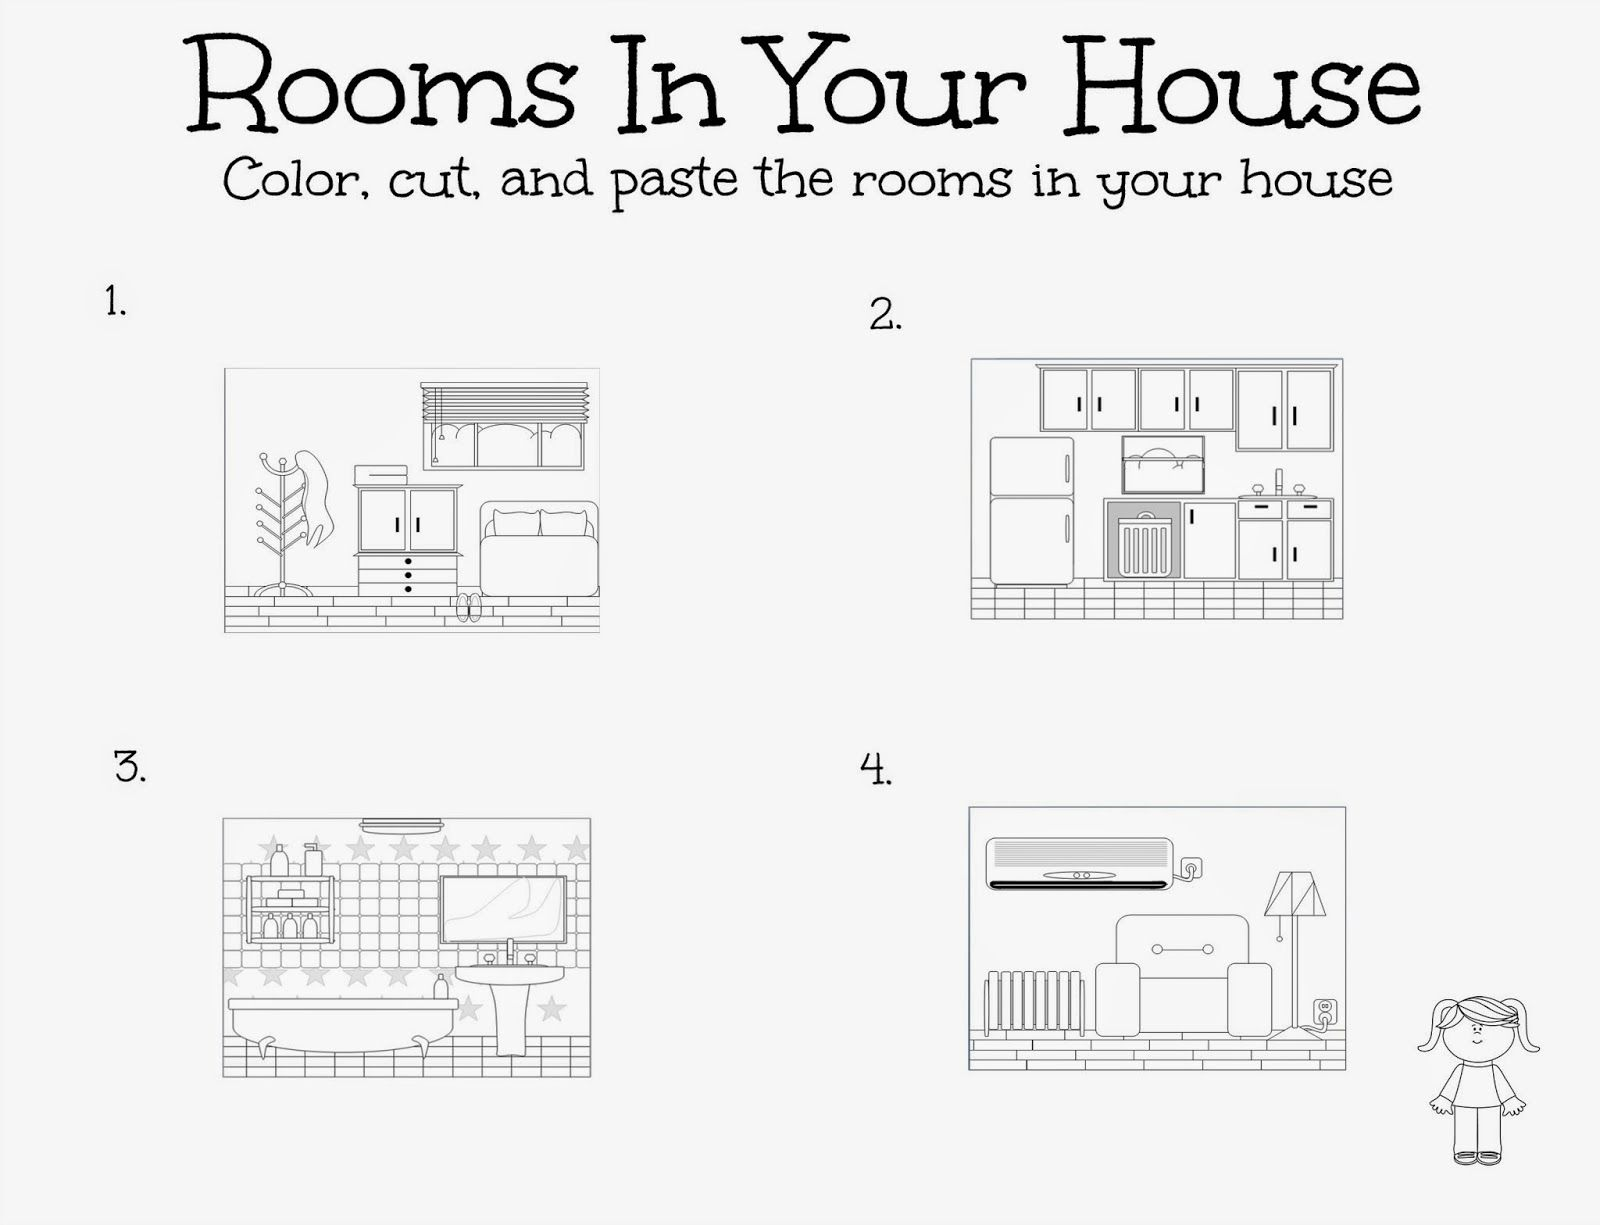 Cute little activity - walk the little girl through the rooms in the house.